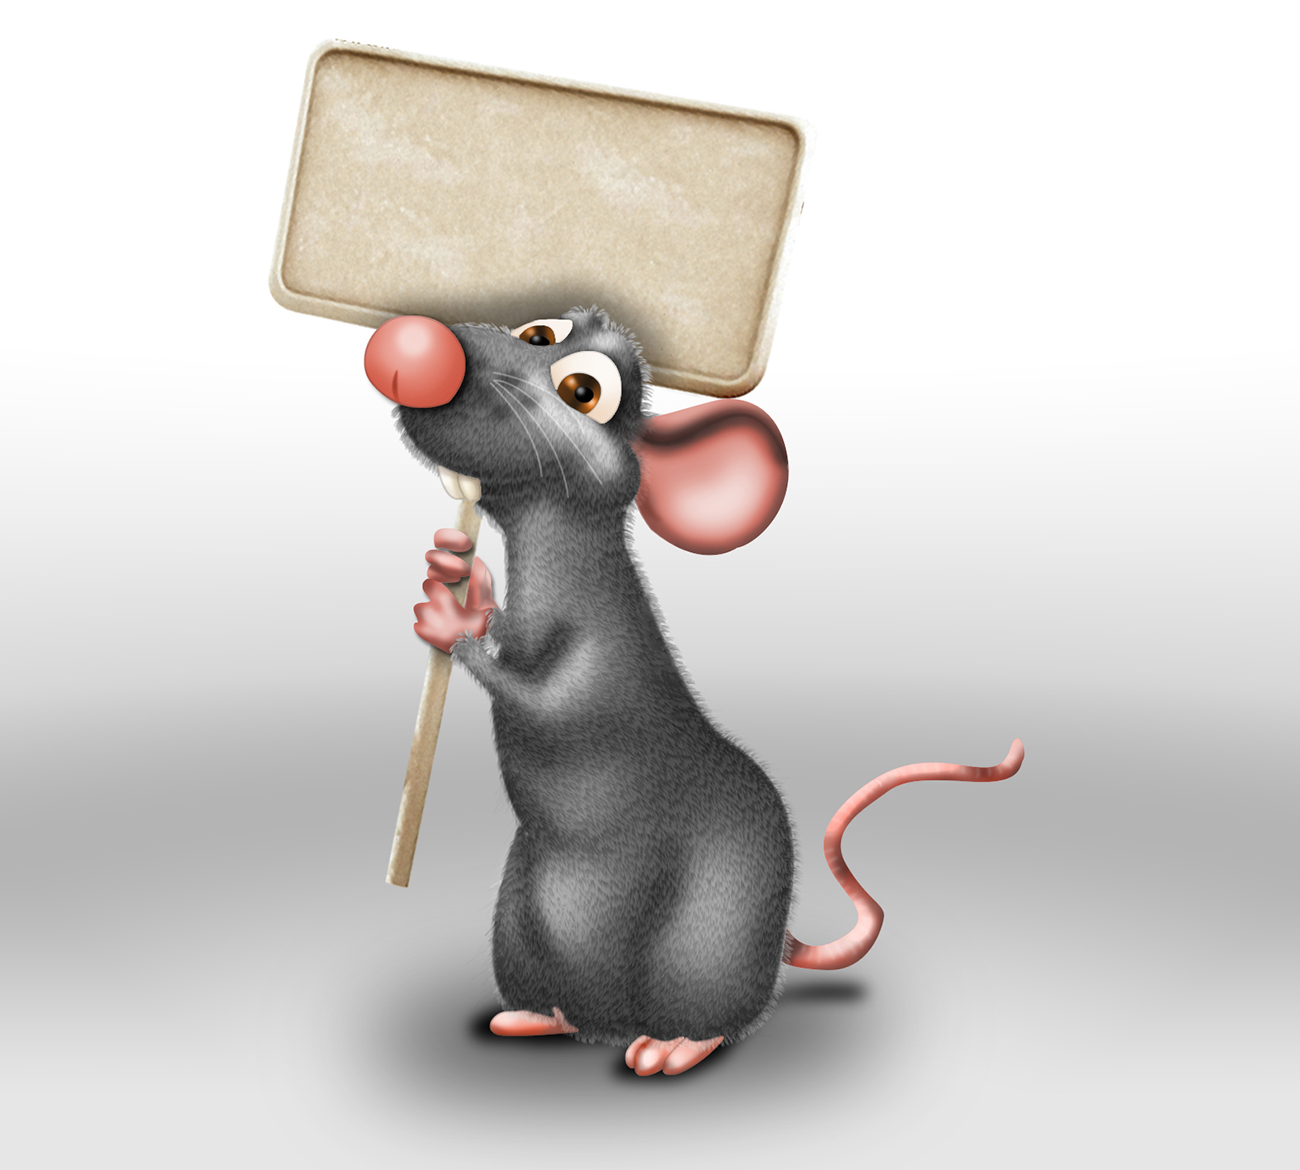 Little mouse mascot